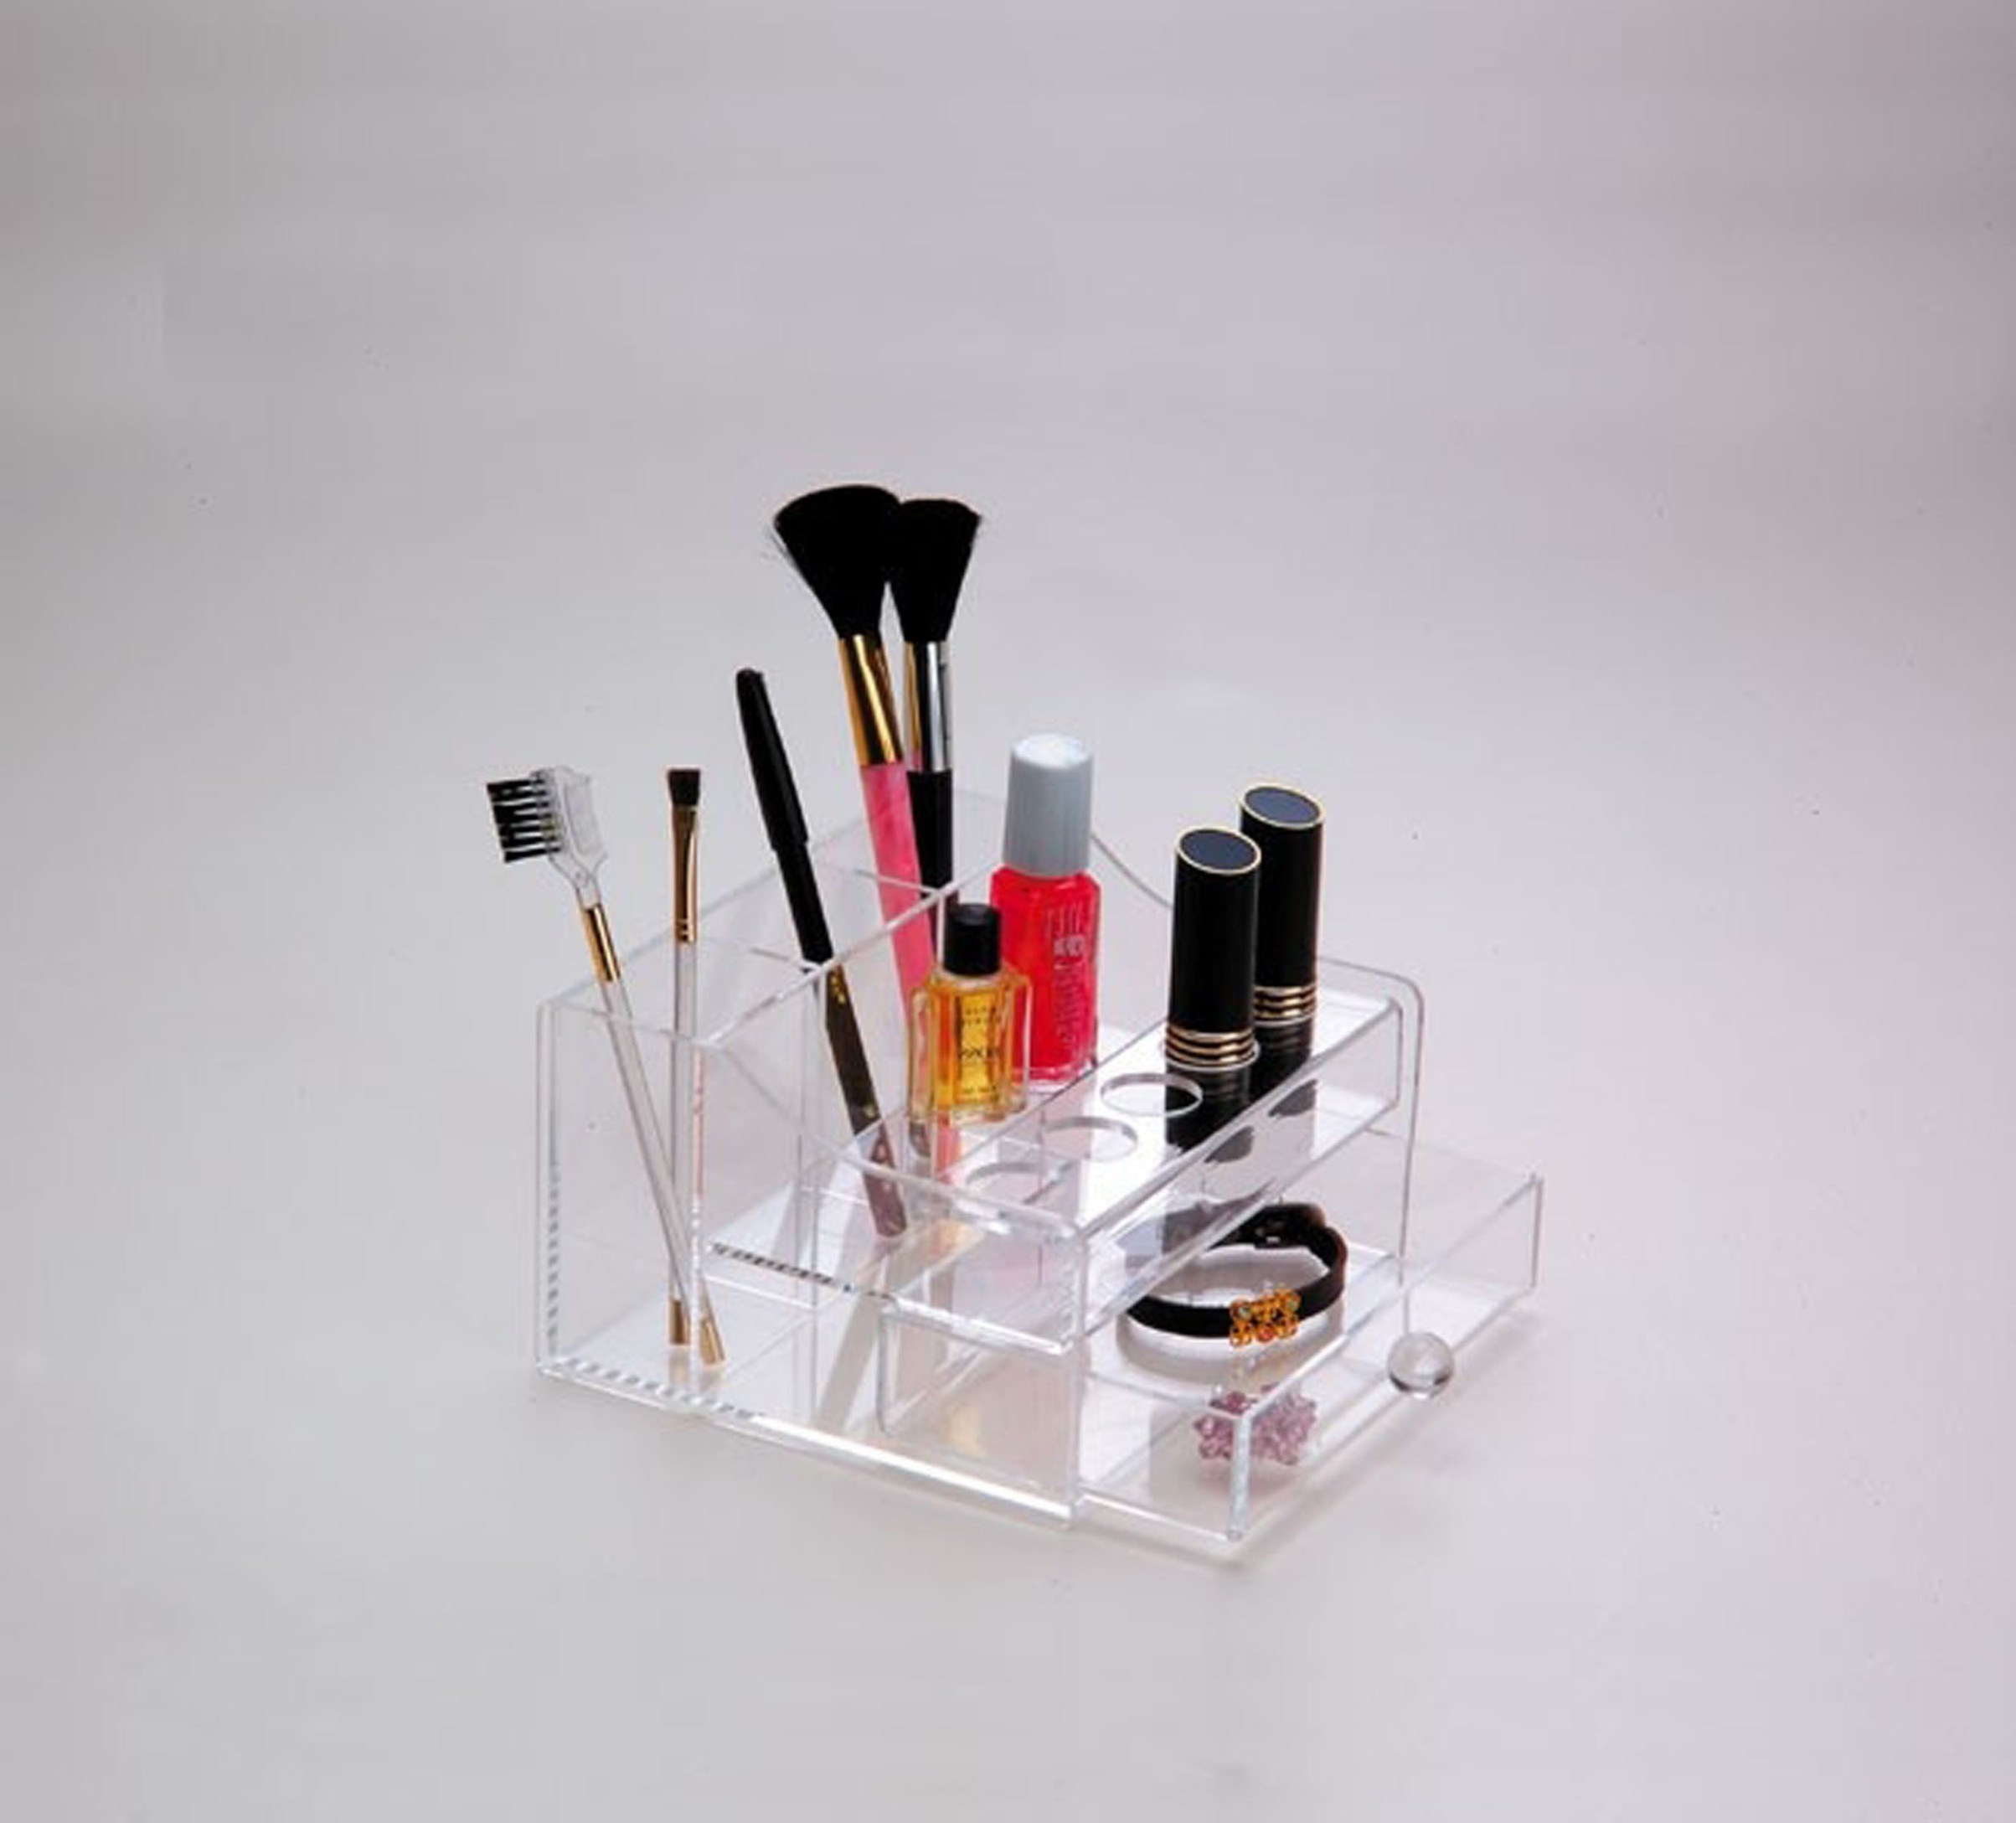 Customize All Kinds of Acrylic Makeup Organizer, Cosmetic Organizer, Acrylic Makeup Storage, Makeup Brush Holder, Lipstick Holder